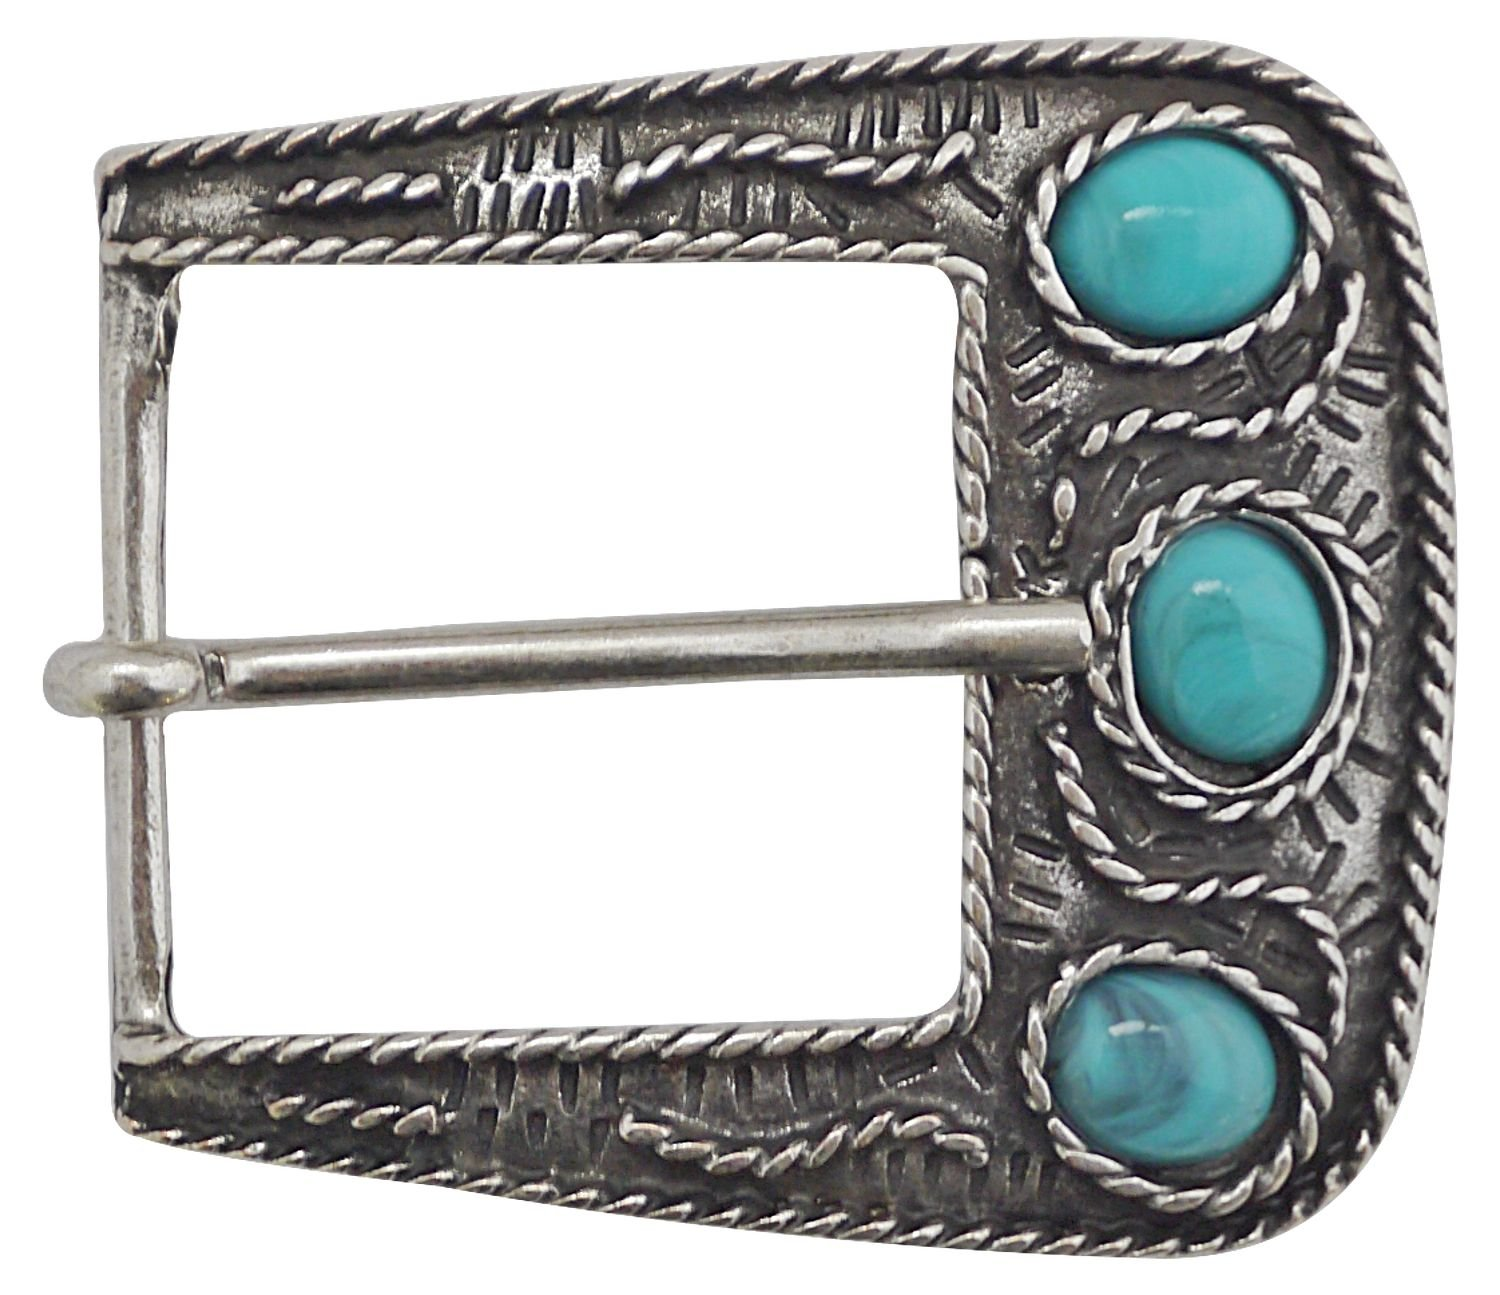 FRONHOFER Belt buckle with turquoise stones, silver buckle for women 1.2'/3 cm, Color:Silver color, Size:One Size